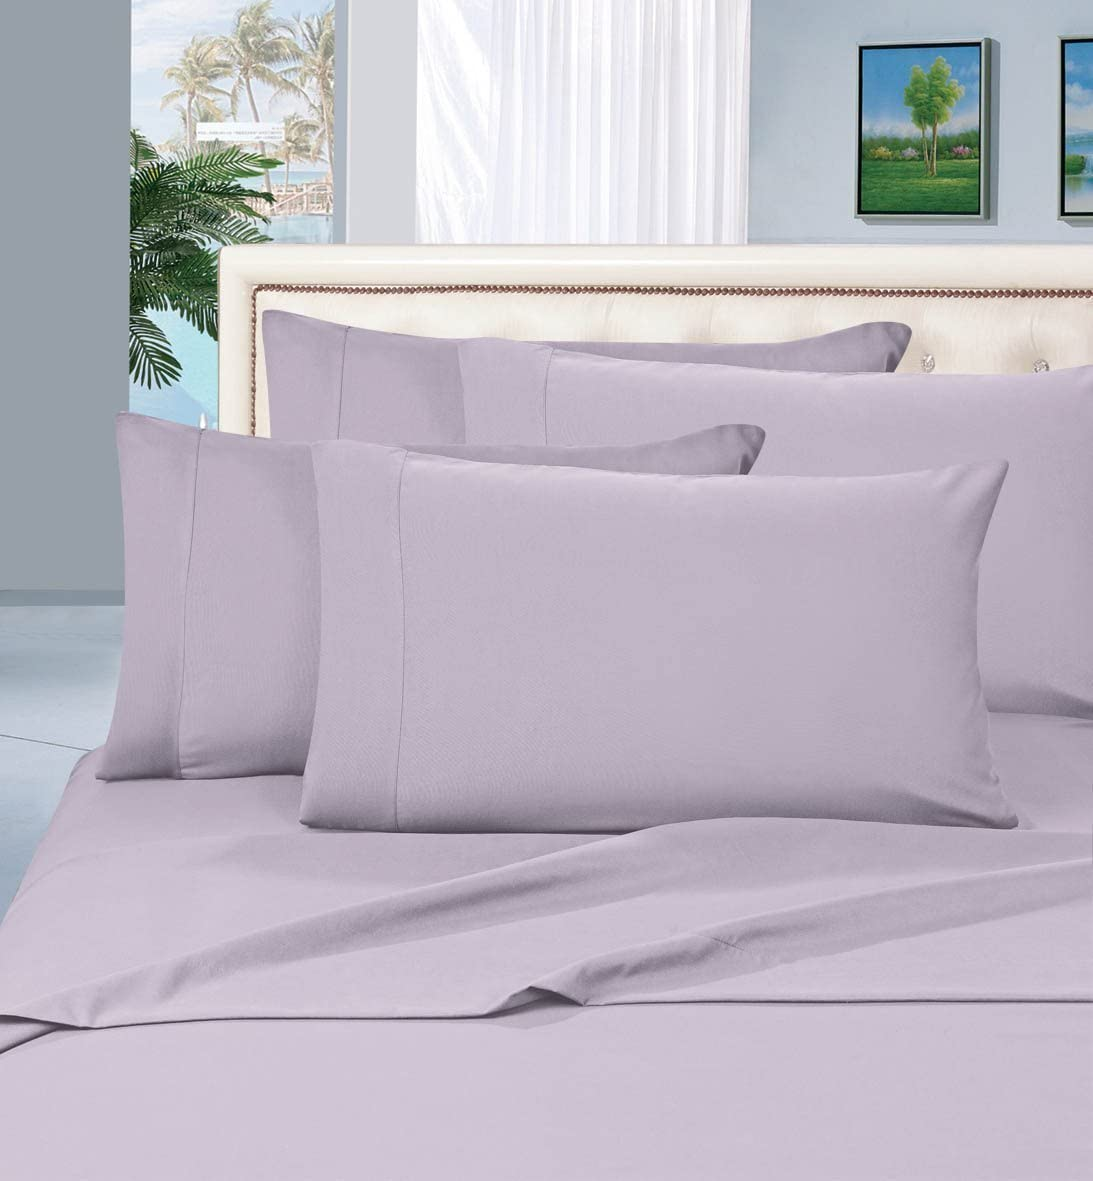 Luxurious Bed Sheets Set on Amazon! Elegant Comfort 1500 Thread Count Wrinkle,Fade and Stain Resistant 4-Piece Bed Sheet Set, Deep Pocket, Hypoallergenic - Queen Lilac